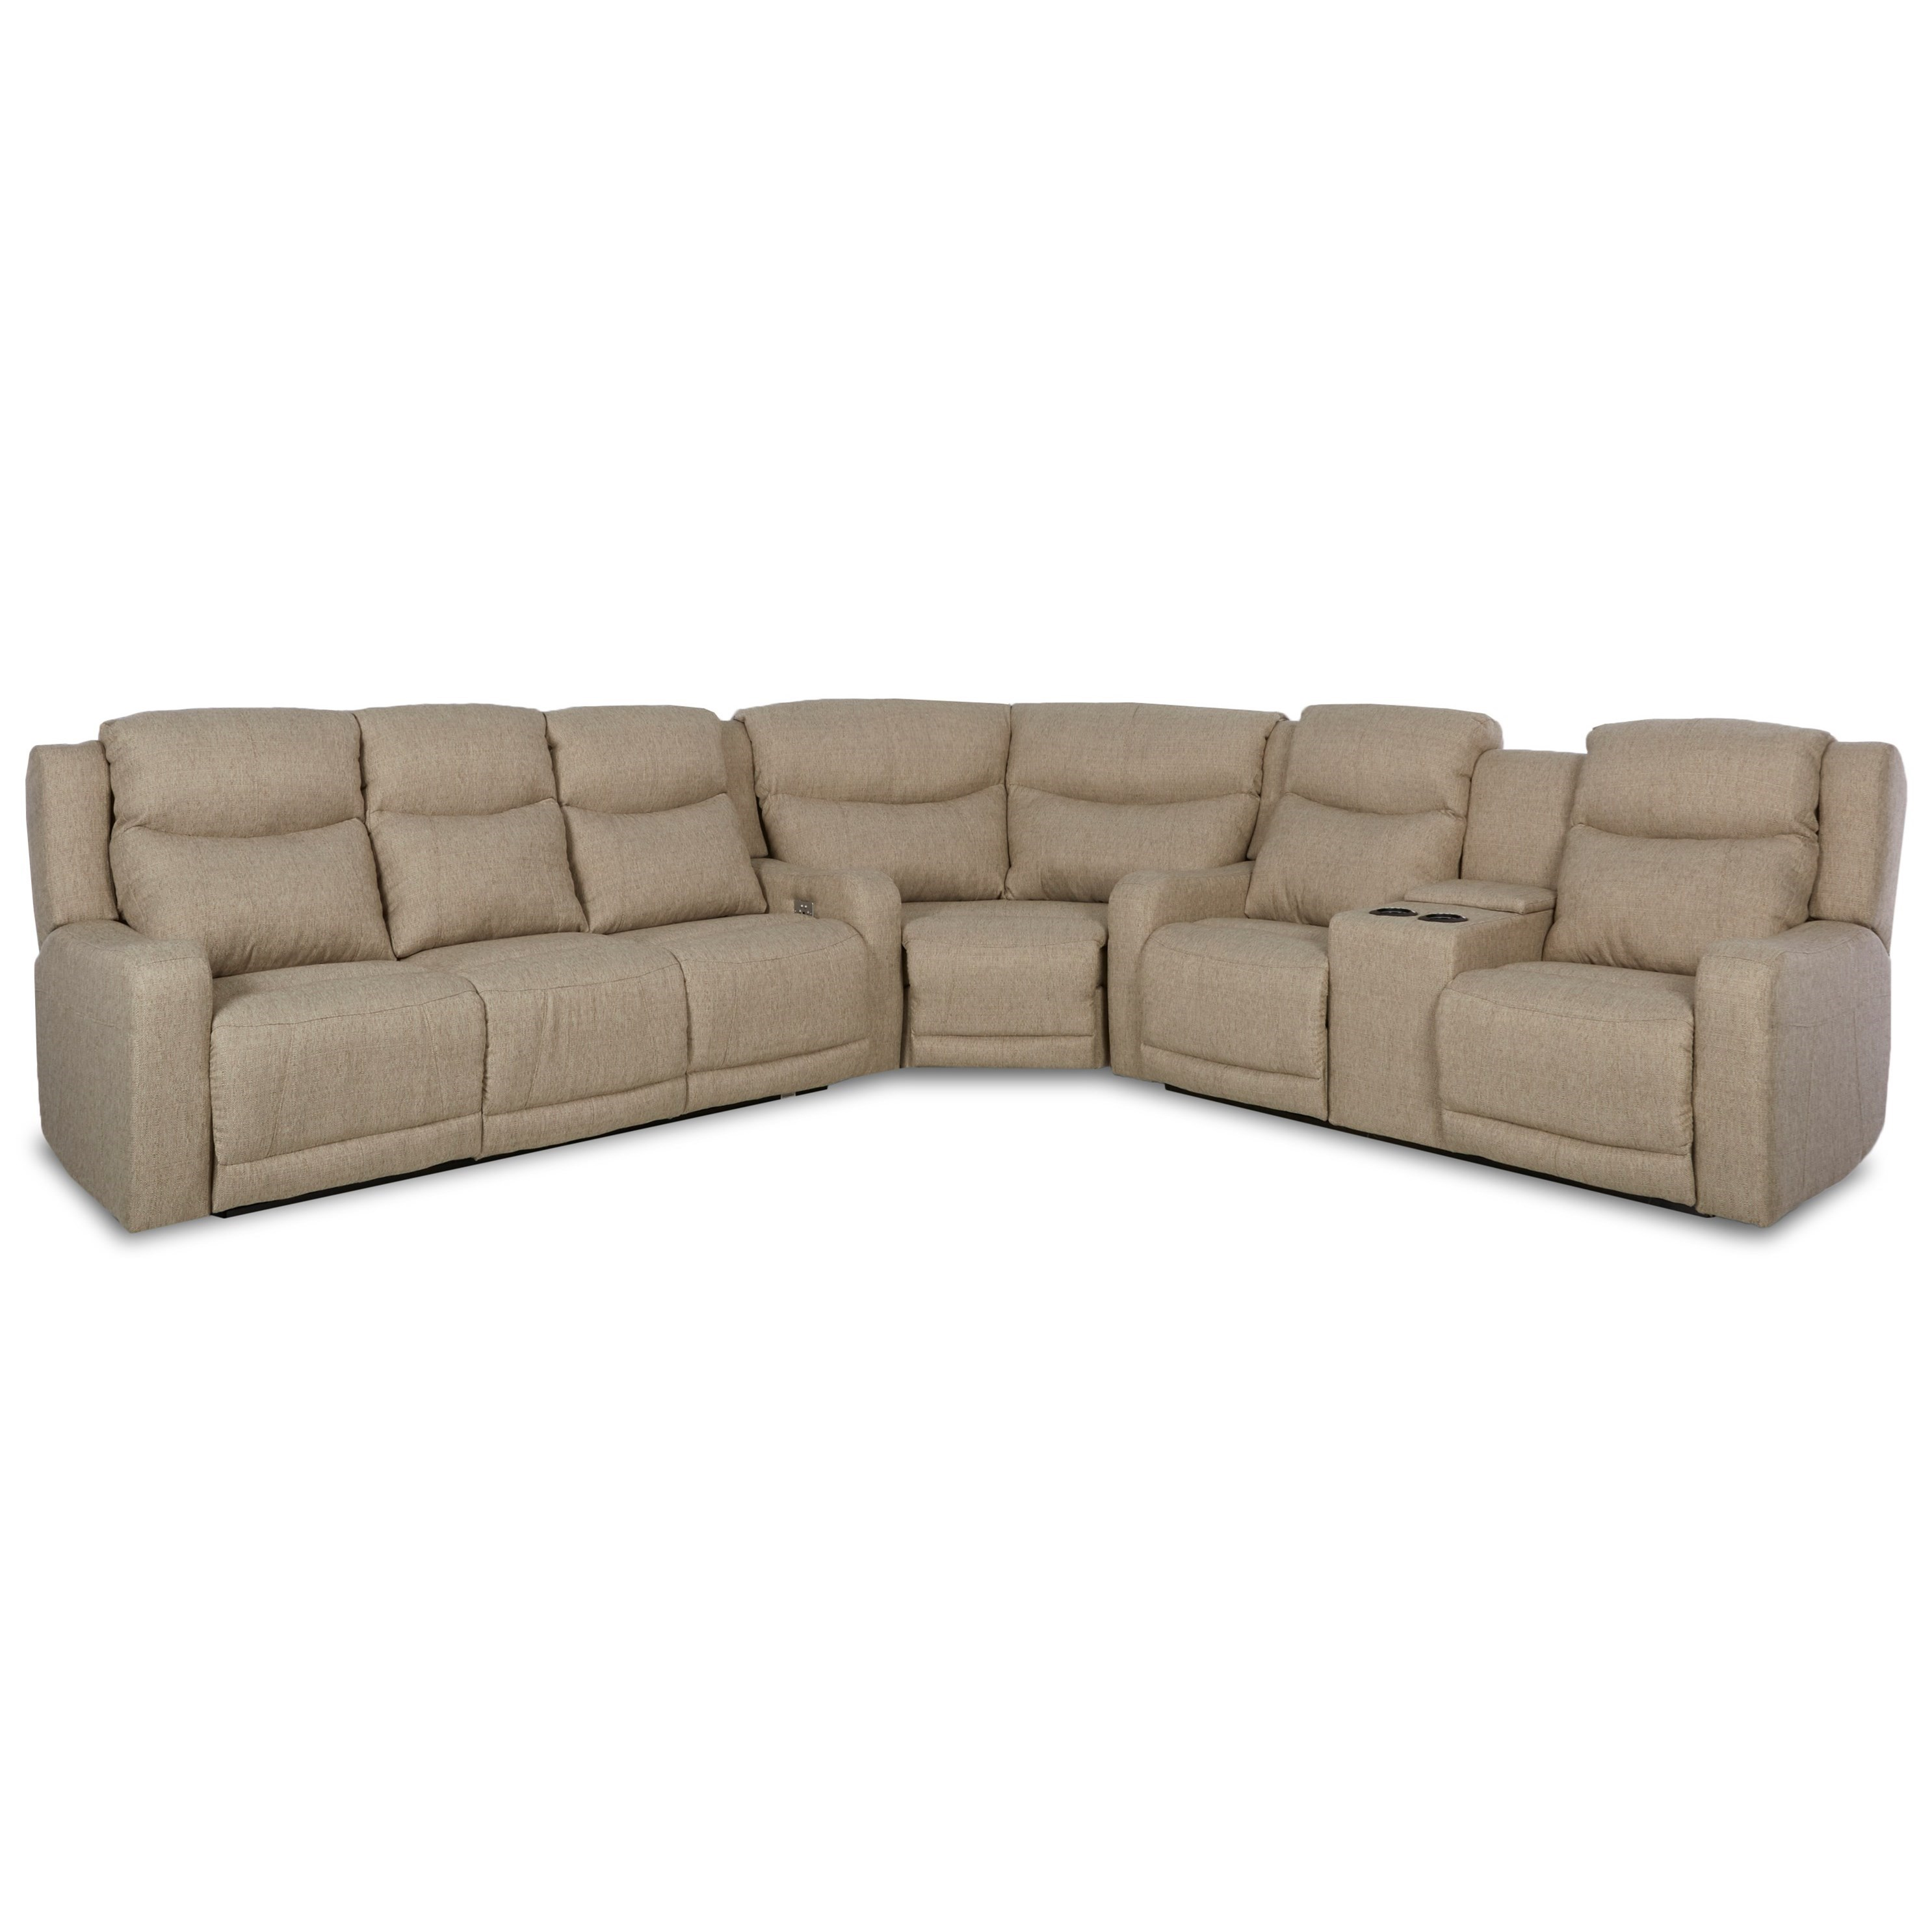 Three Pc Power Reclining Sectional Sofa With Adjustable